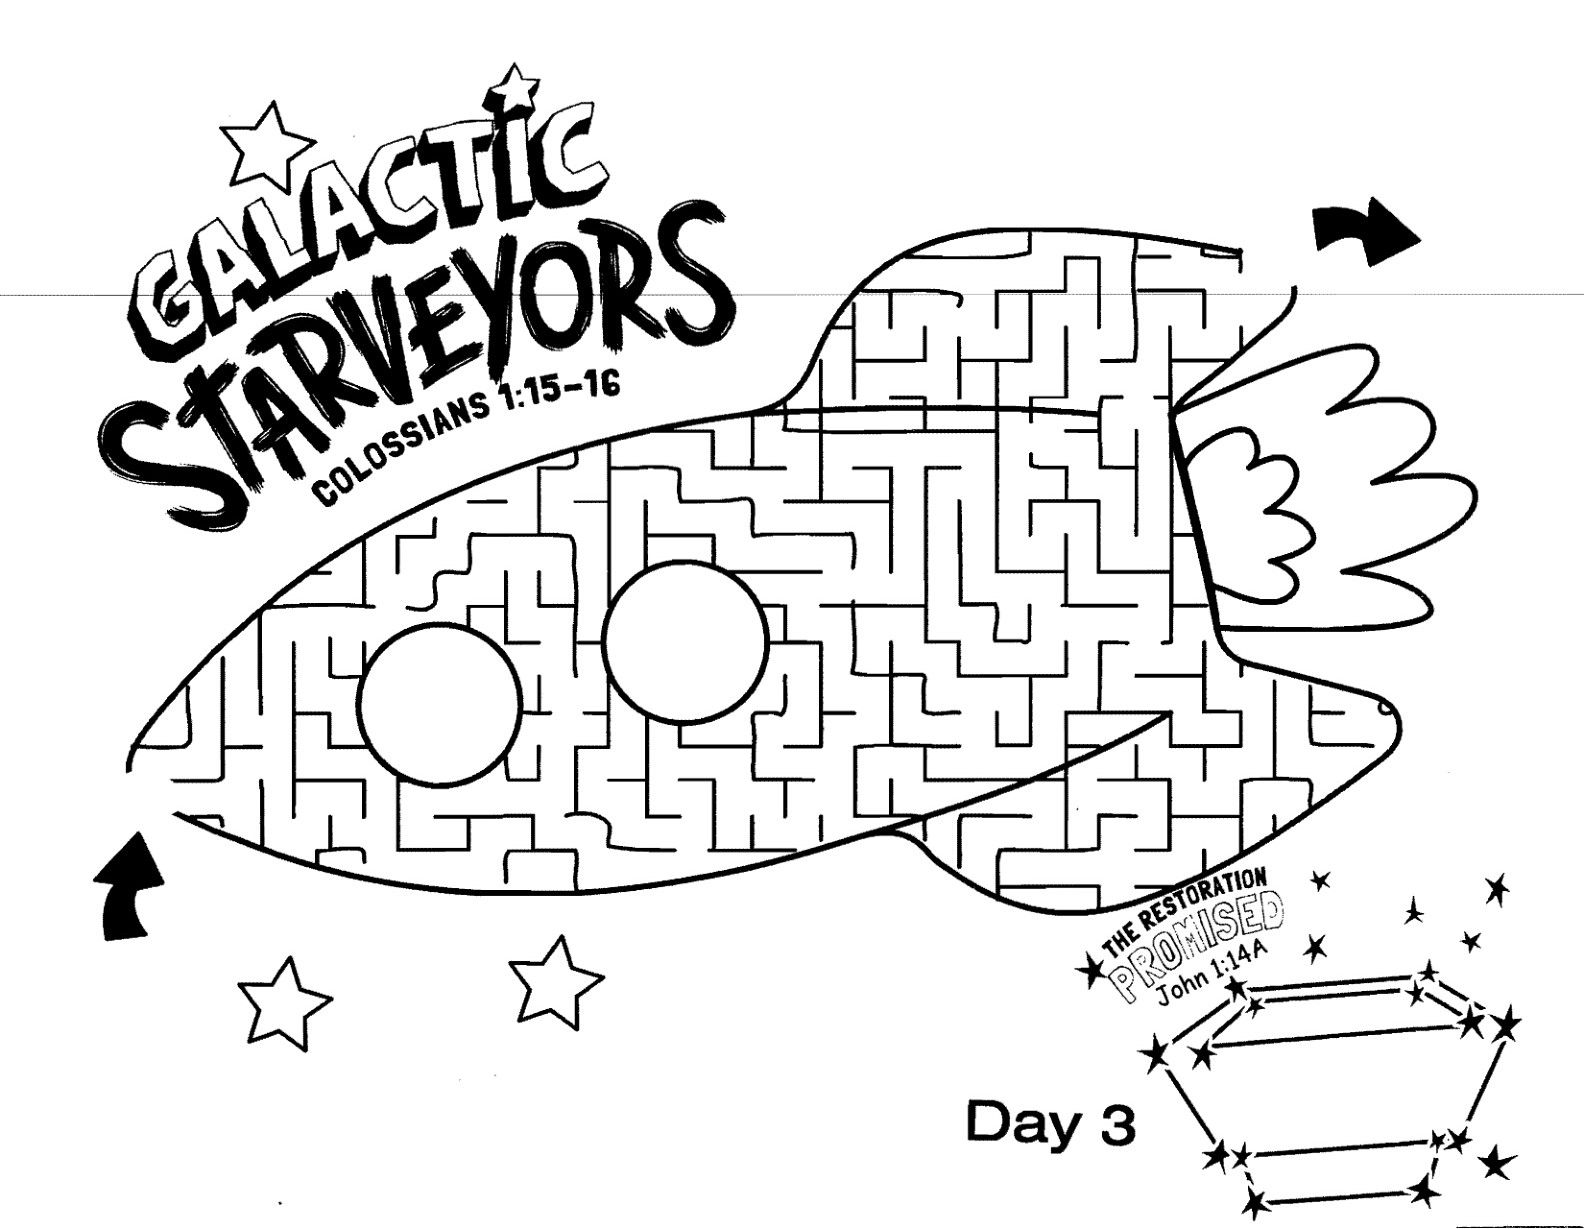 Galactic Starveyors Coloring Sheet Vbs Day 3